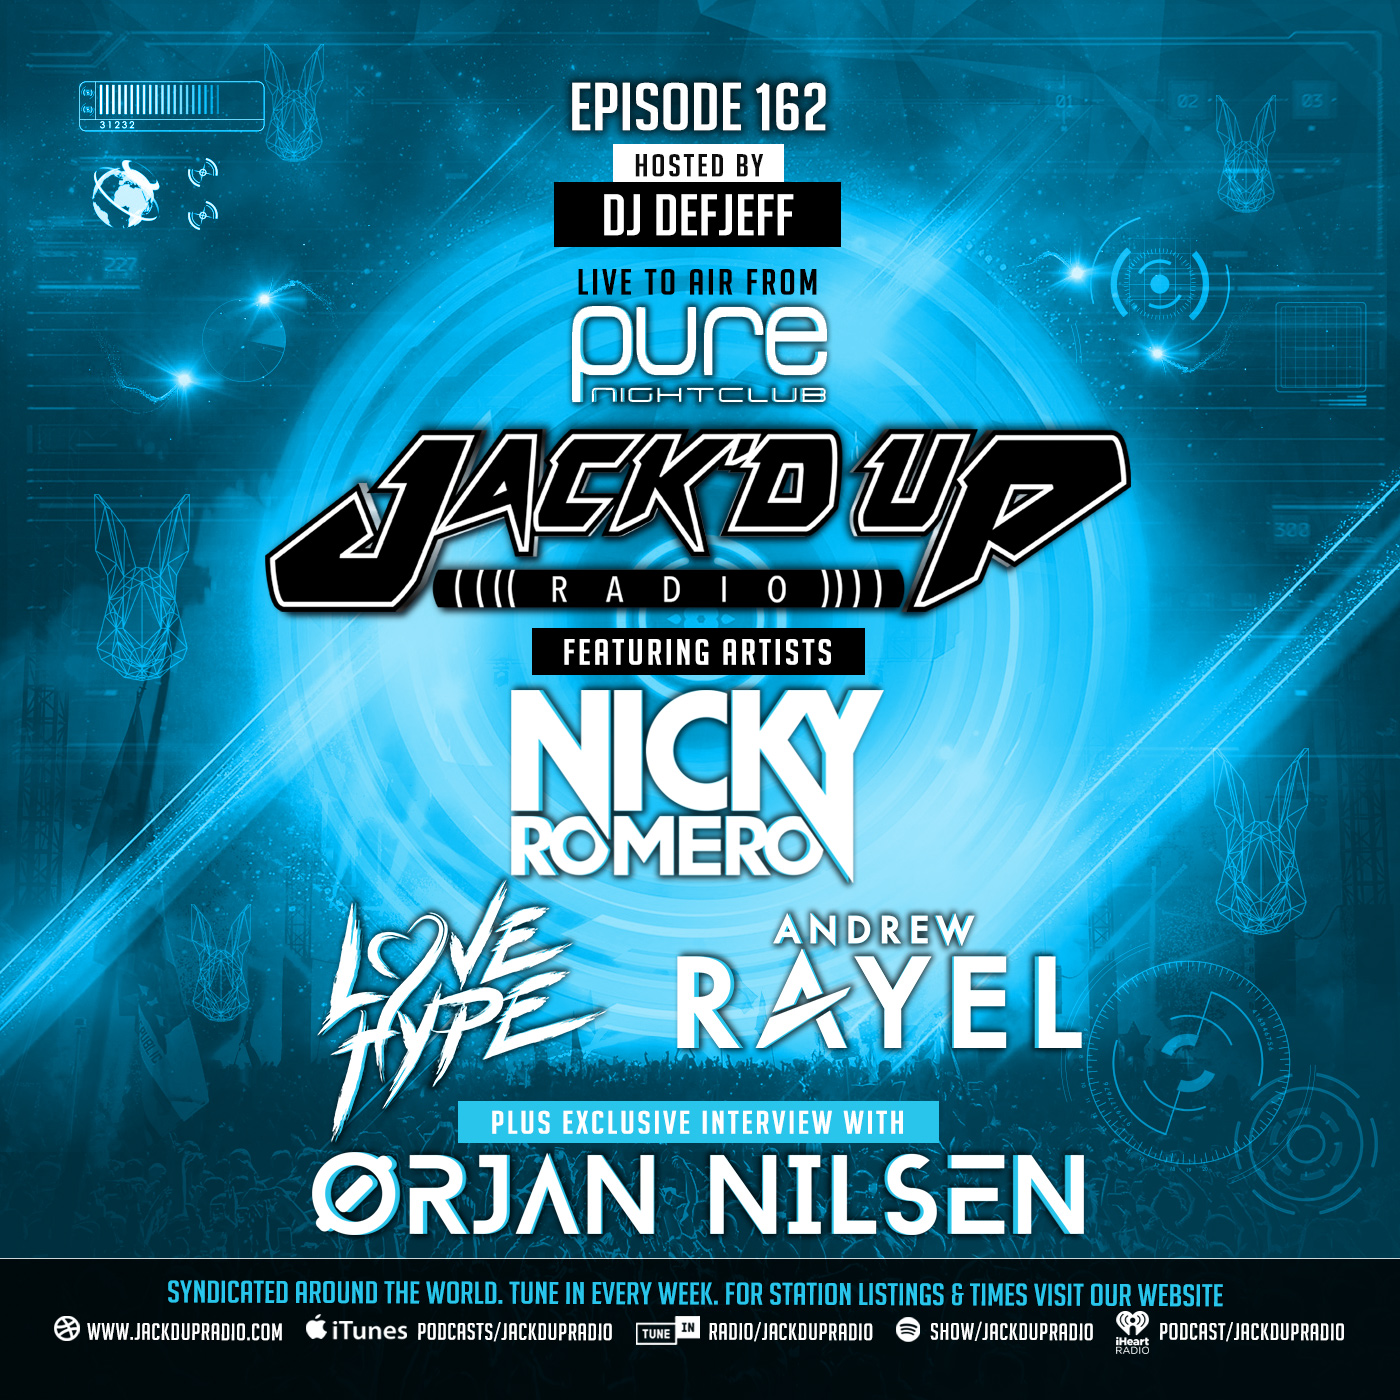 Jack'd Up Radio 162 (Guests Orjan Nilsen, Love Hype, Andrew Rayel & Nicky Romero)